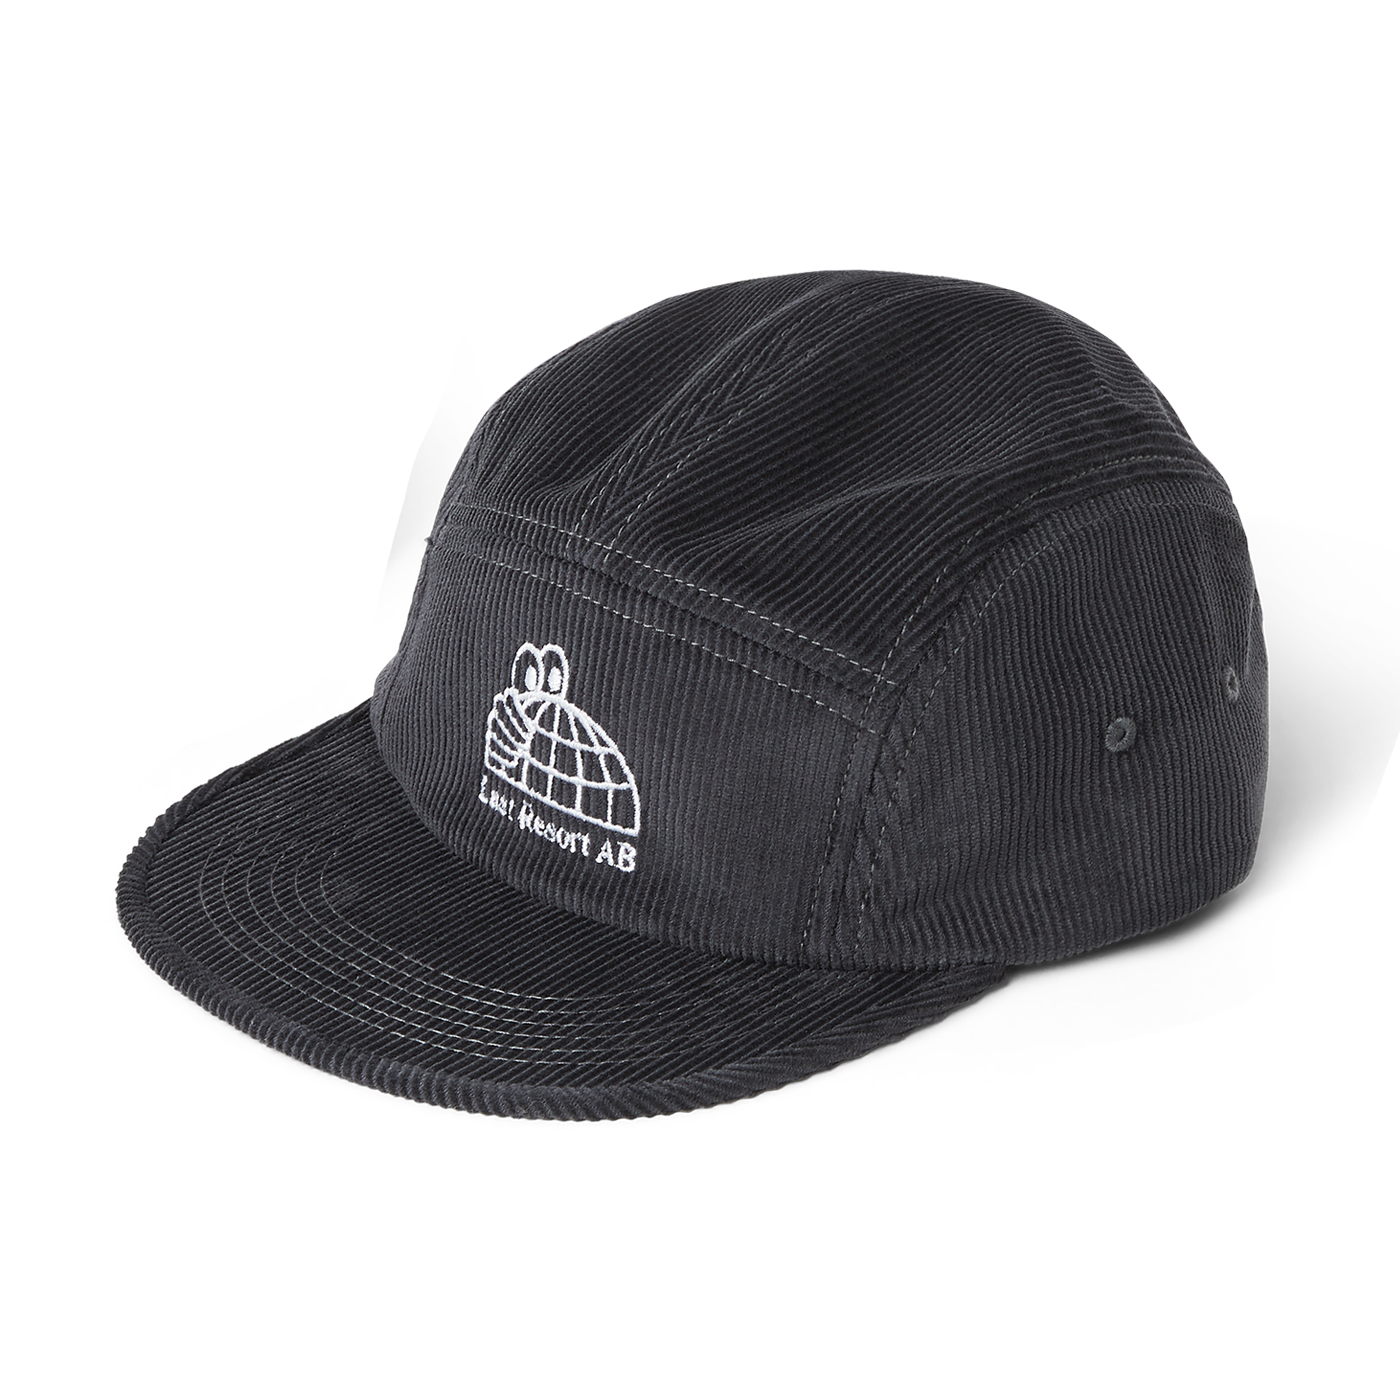 Last Resort AB Half Globe Cord 5-Panel Grey